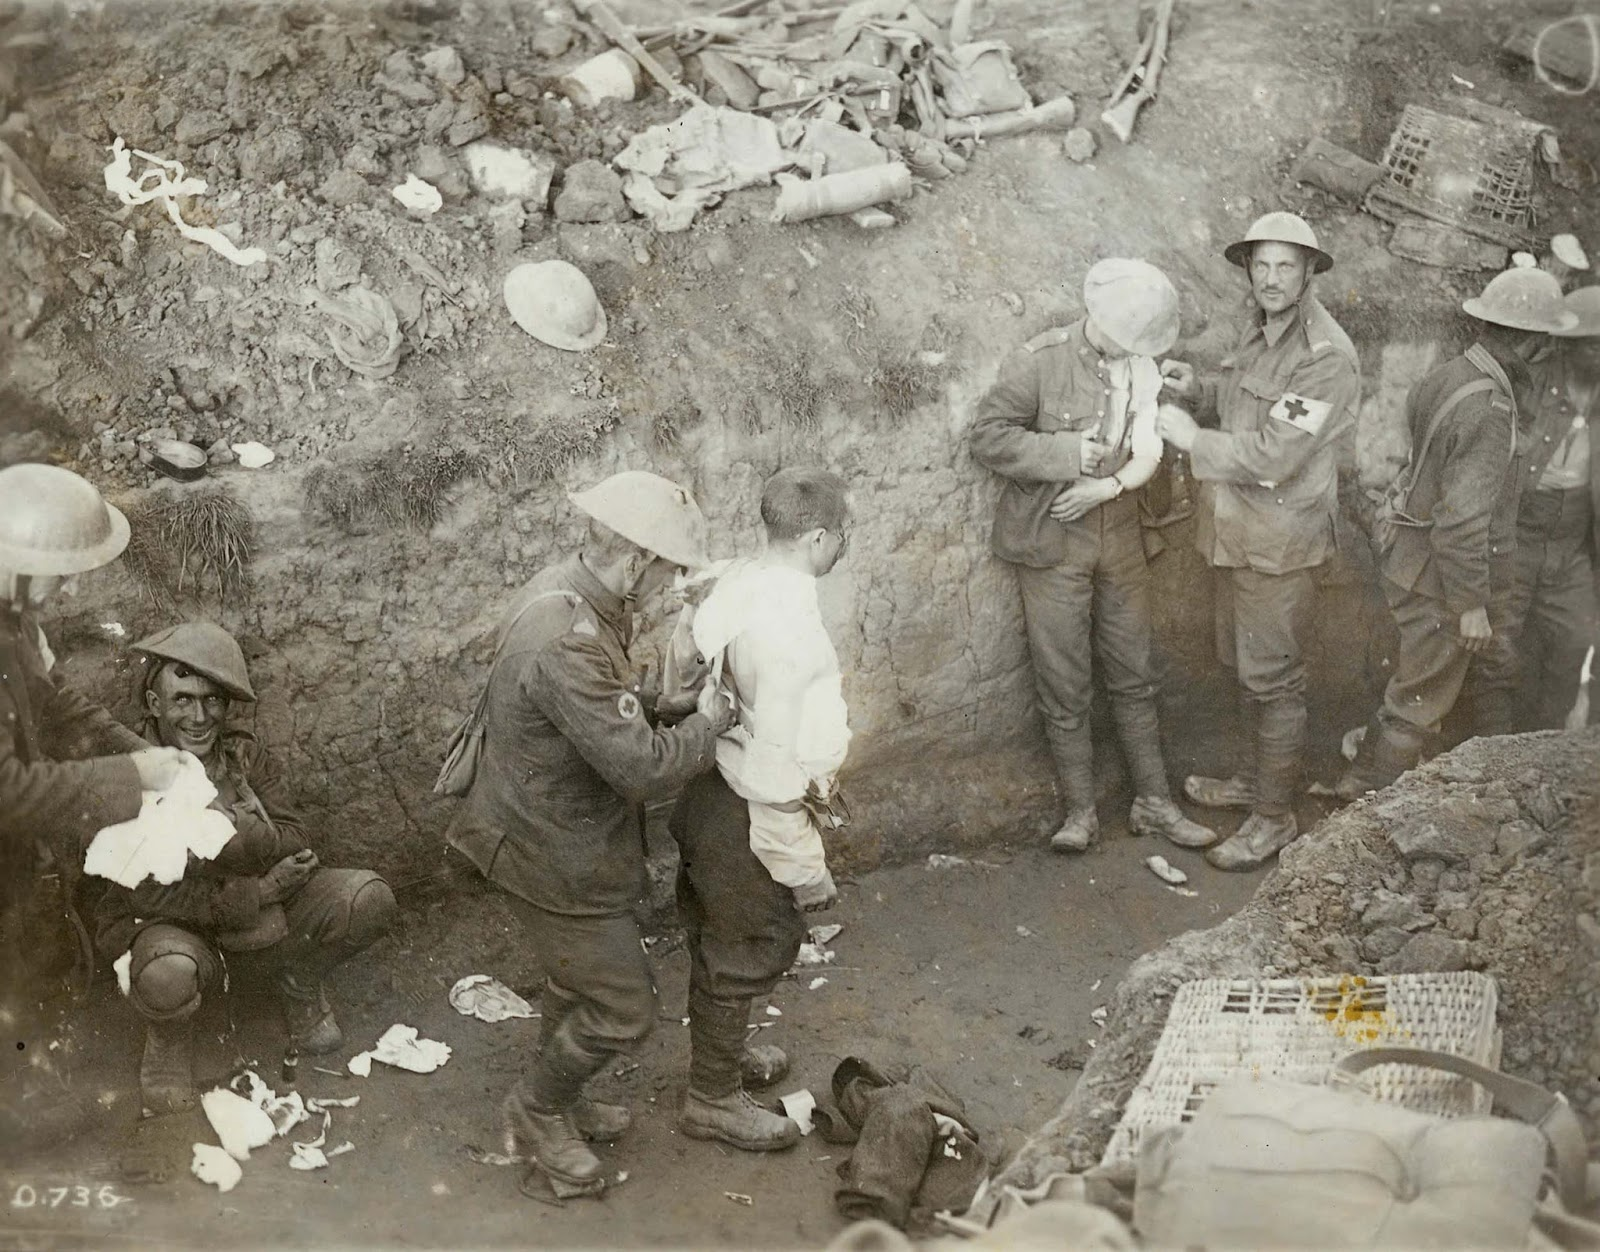 Medical orderlies tend to the wounded in a trench during the Battle of Flers-Courcelette in mid-September 1916. The man on the left is suffering from Shell Shock.